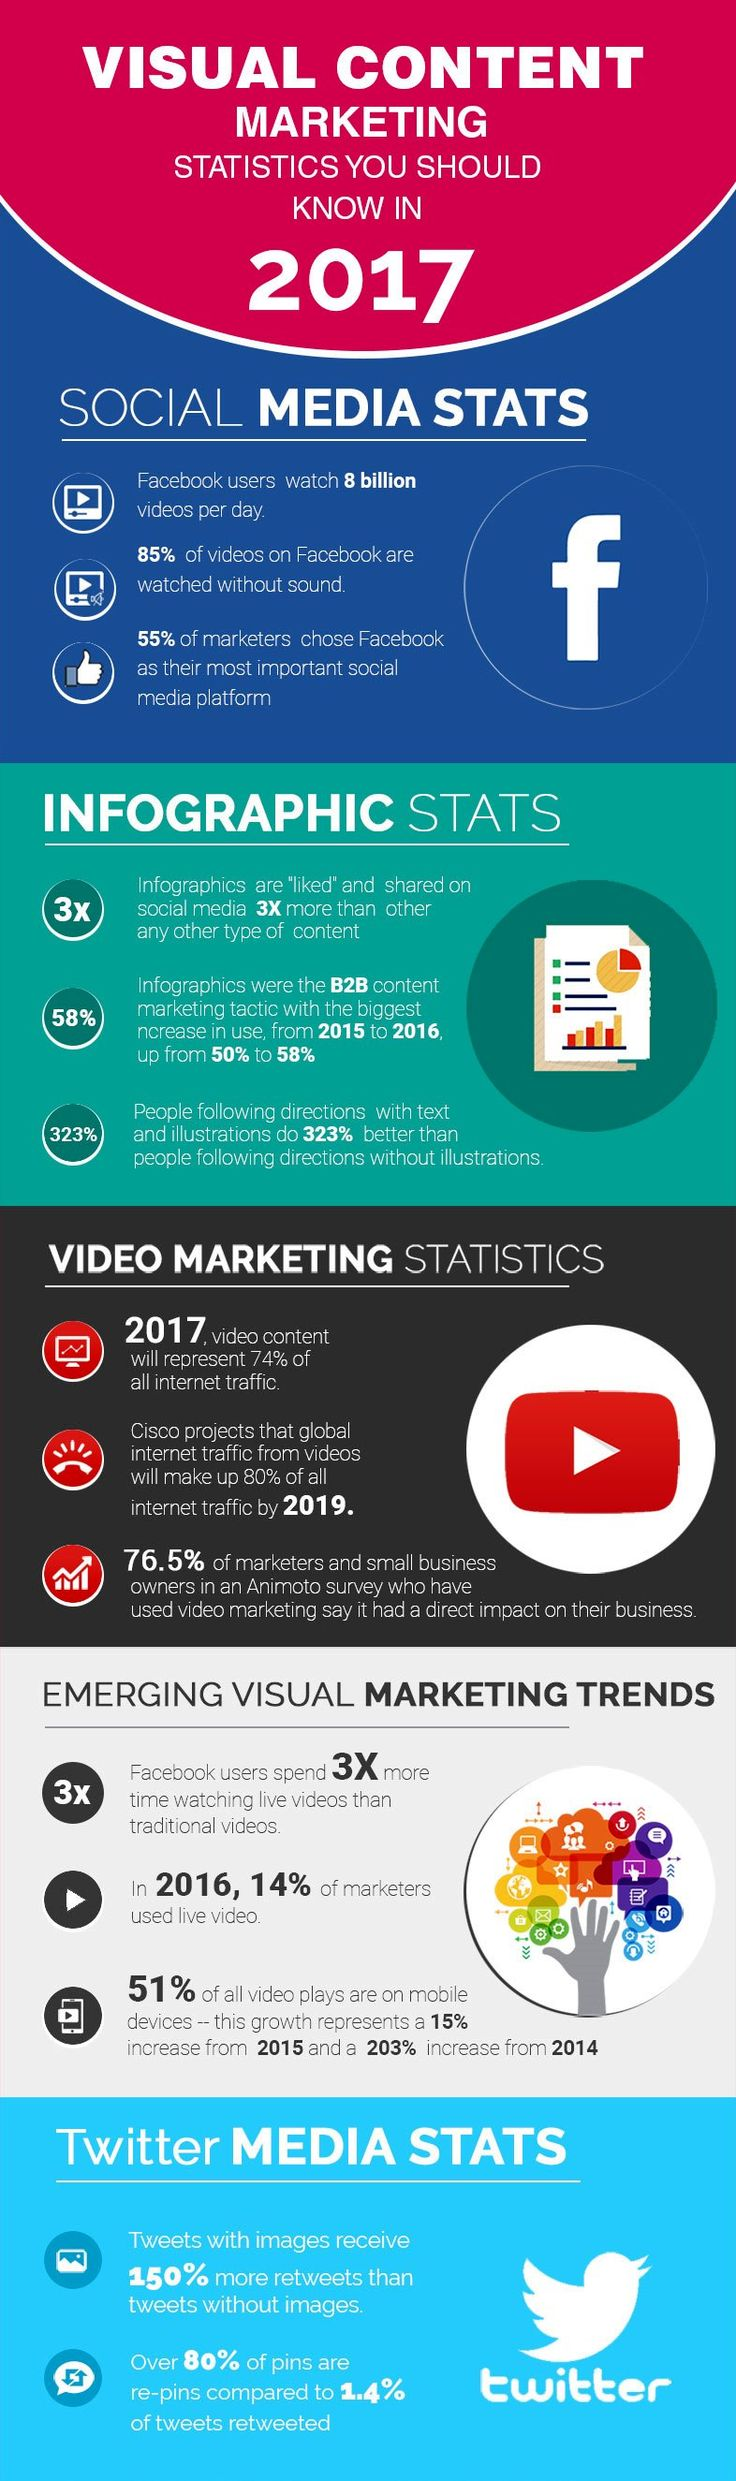 Marketing Infographic Visual Content